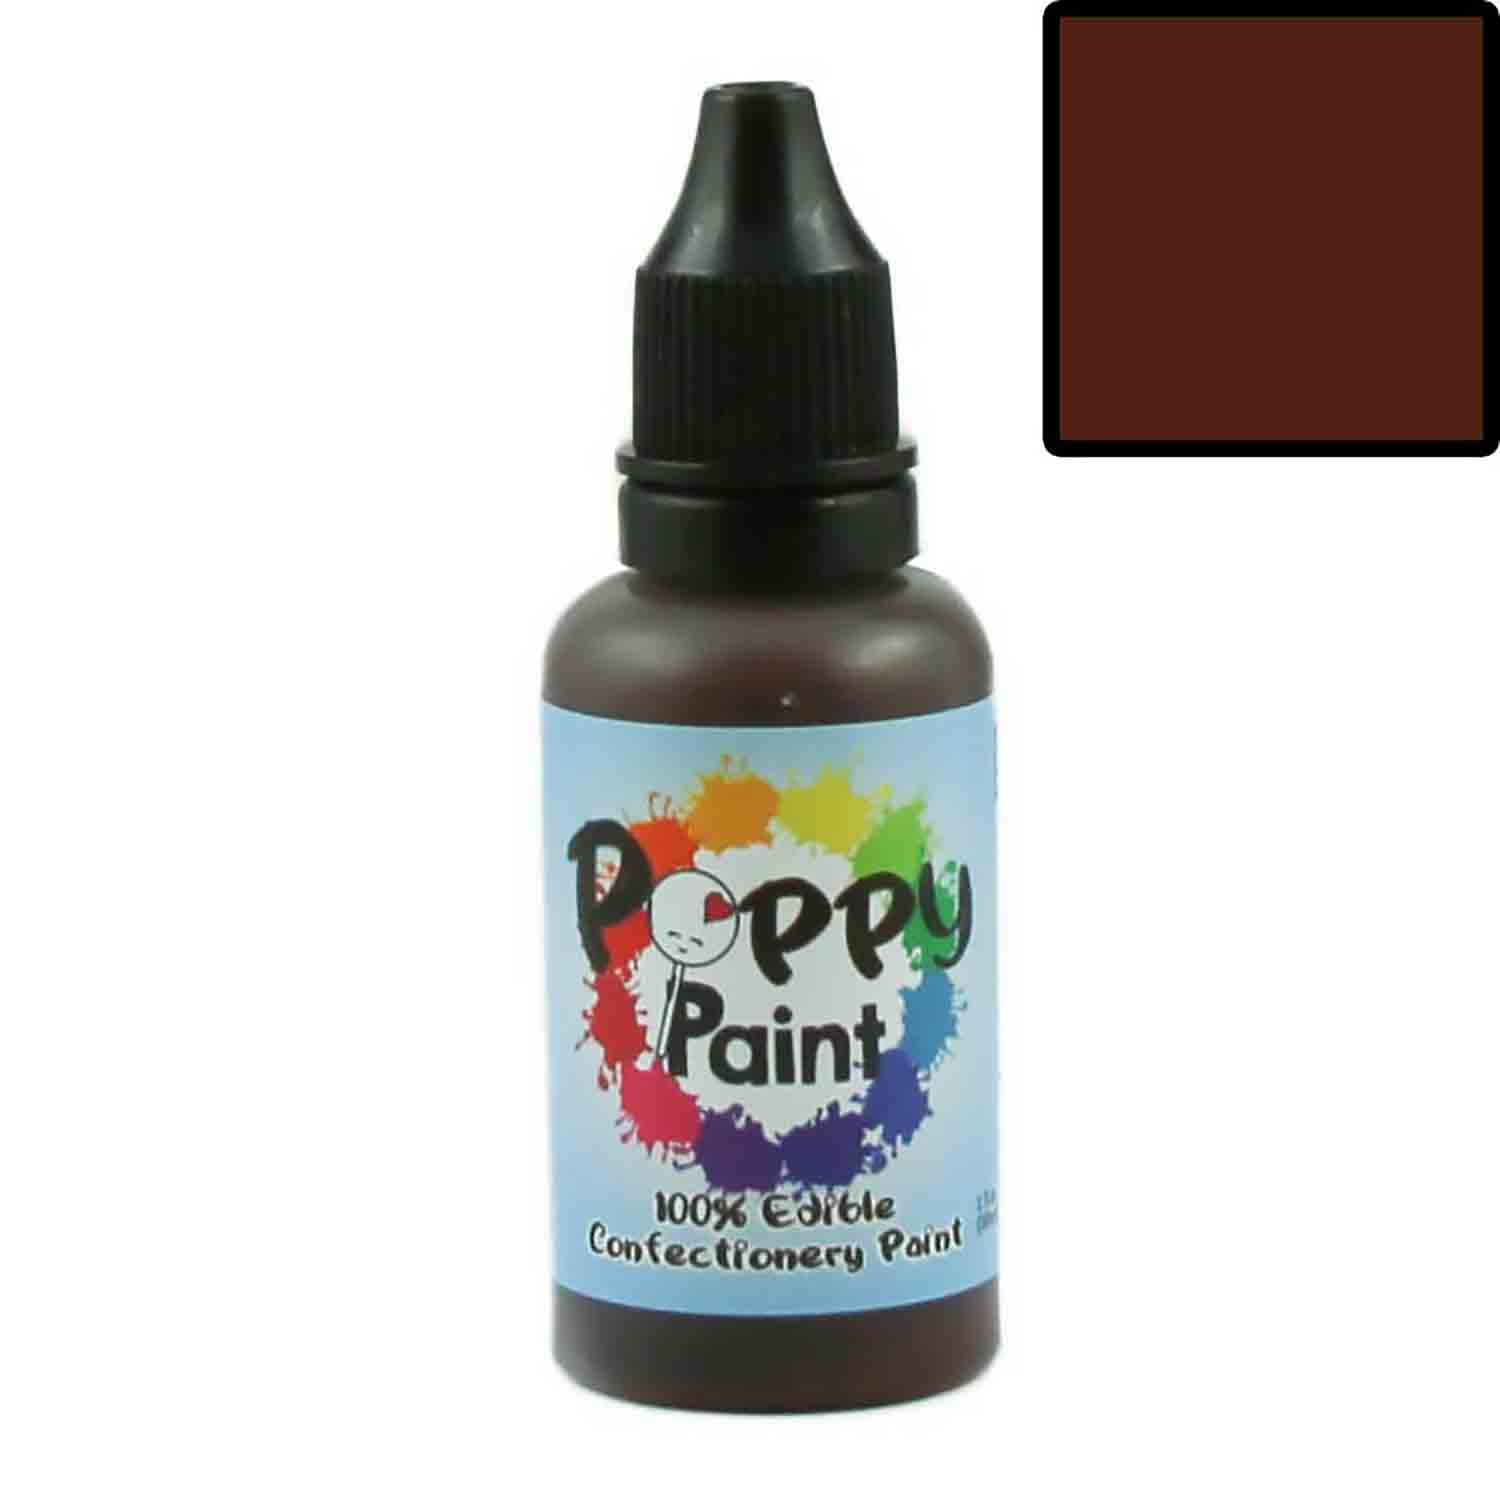 Brown Poppy Paint 100% Edible Confectionery Paint